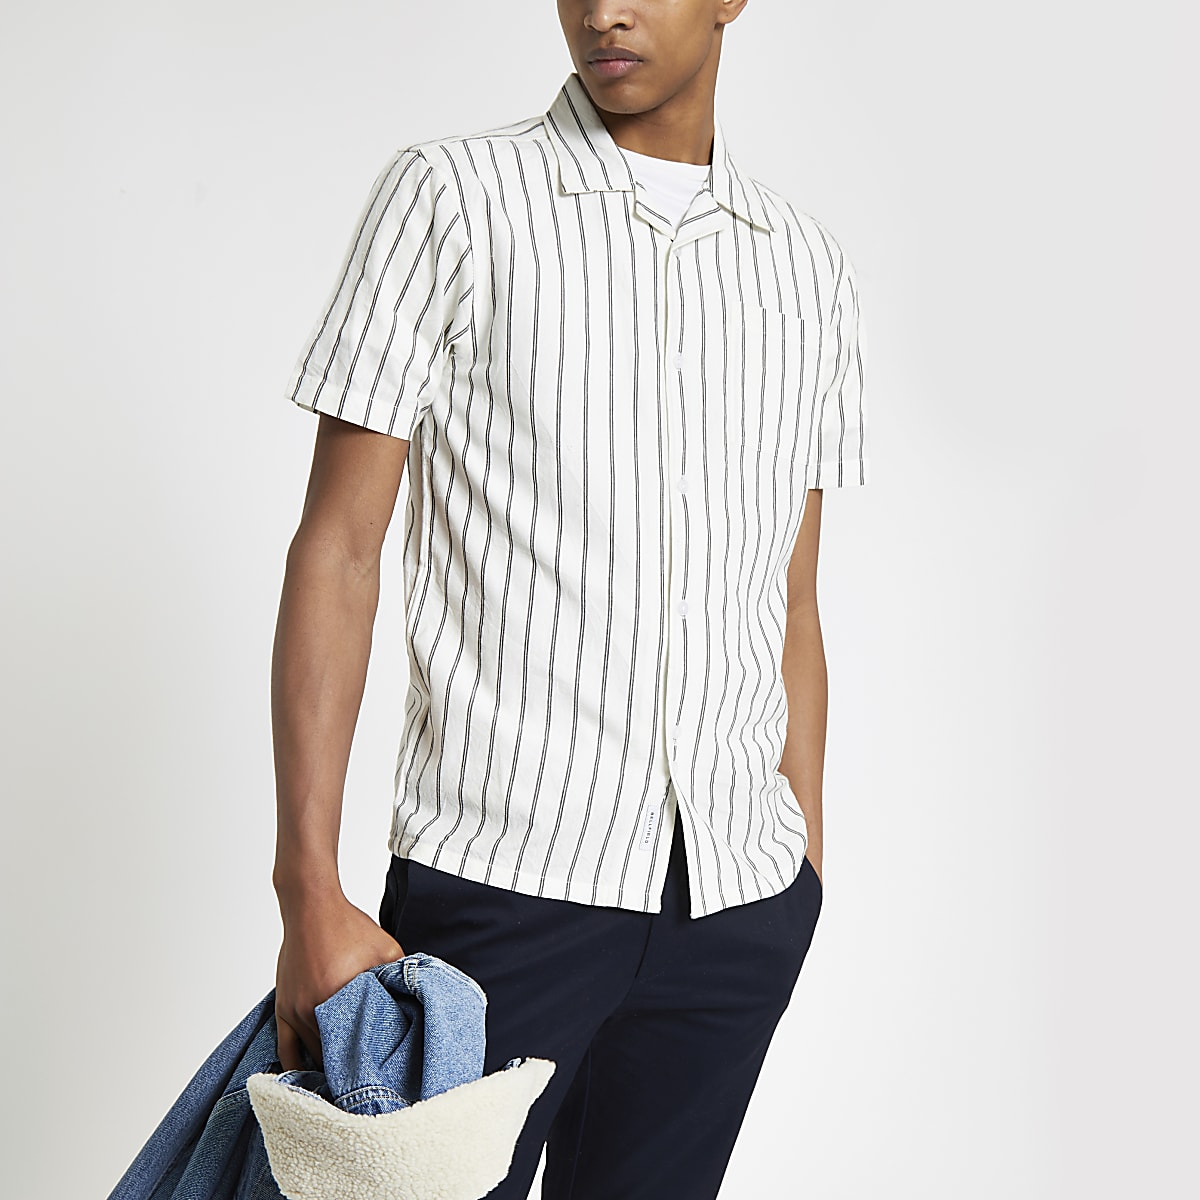 Bellfield – Chemise à rayures verticales blanche